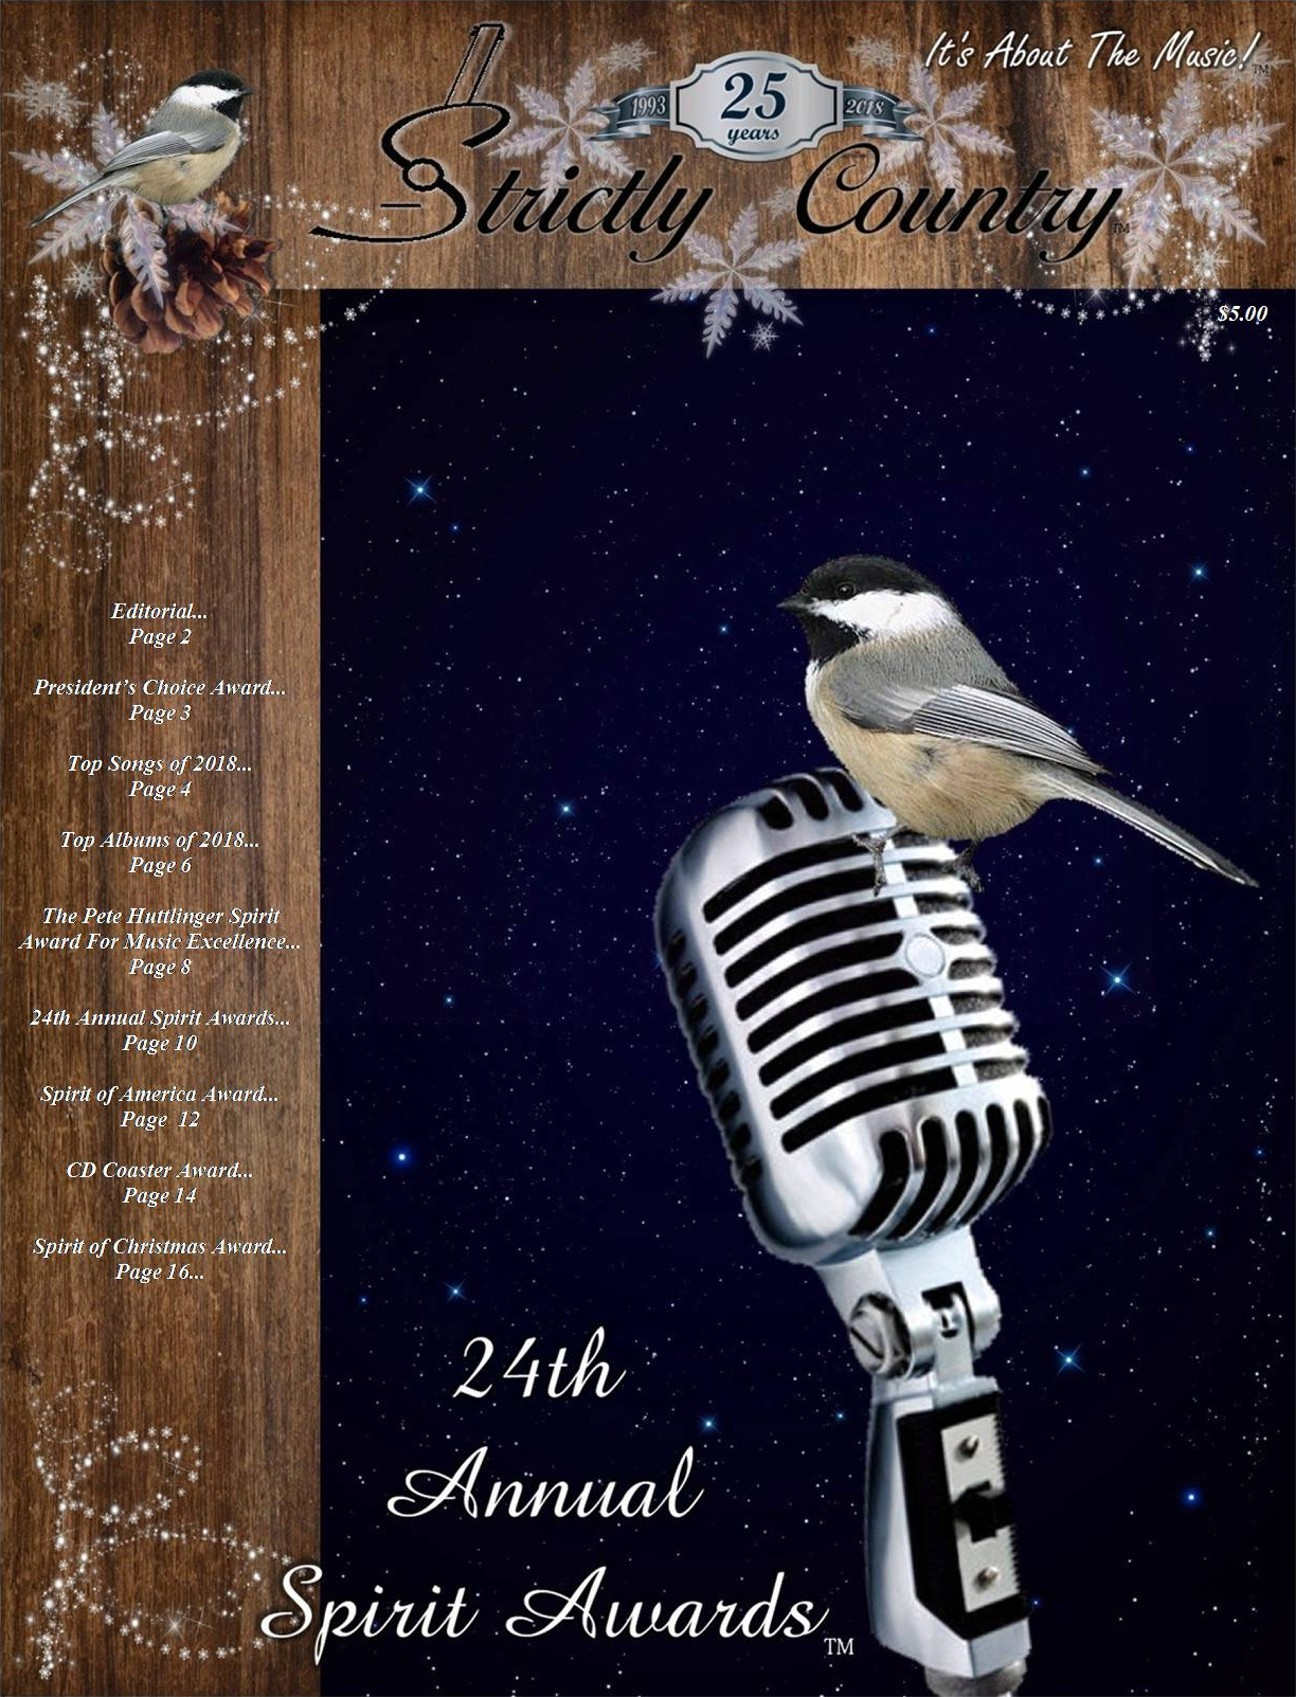 Strictly Country Magazine - Volume 26 Issue 1